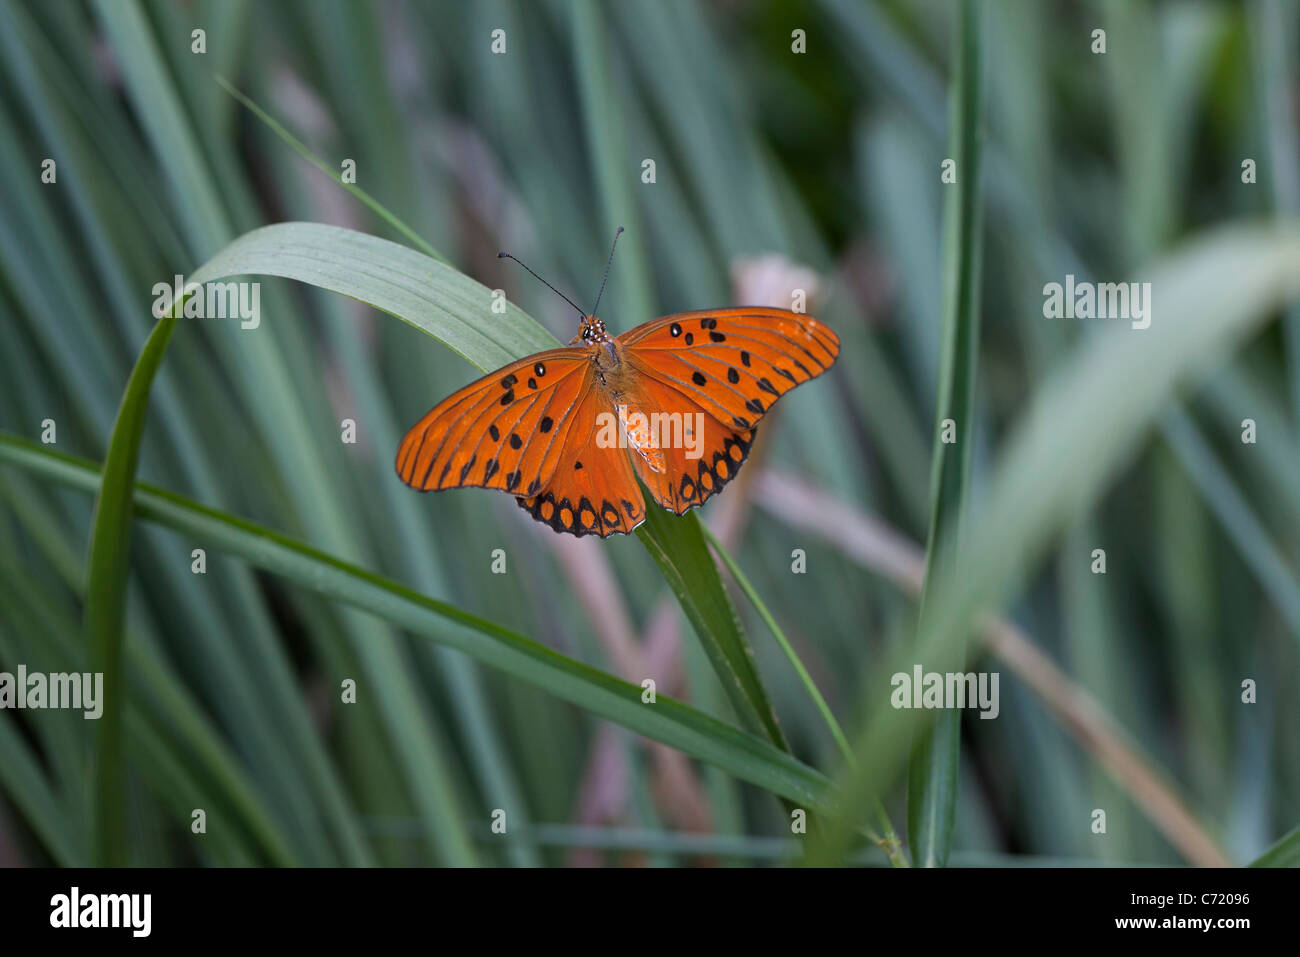 Gulf fritillary butterfly on blade of grass - Stock Image